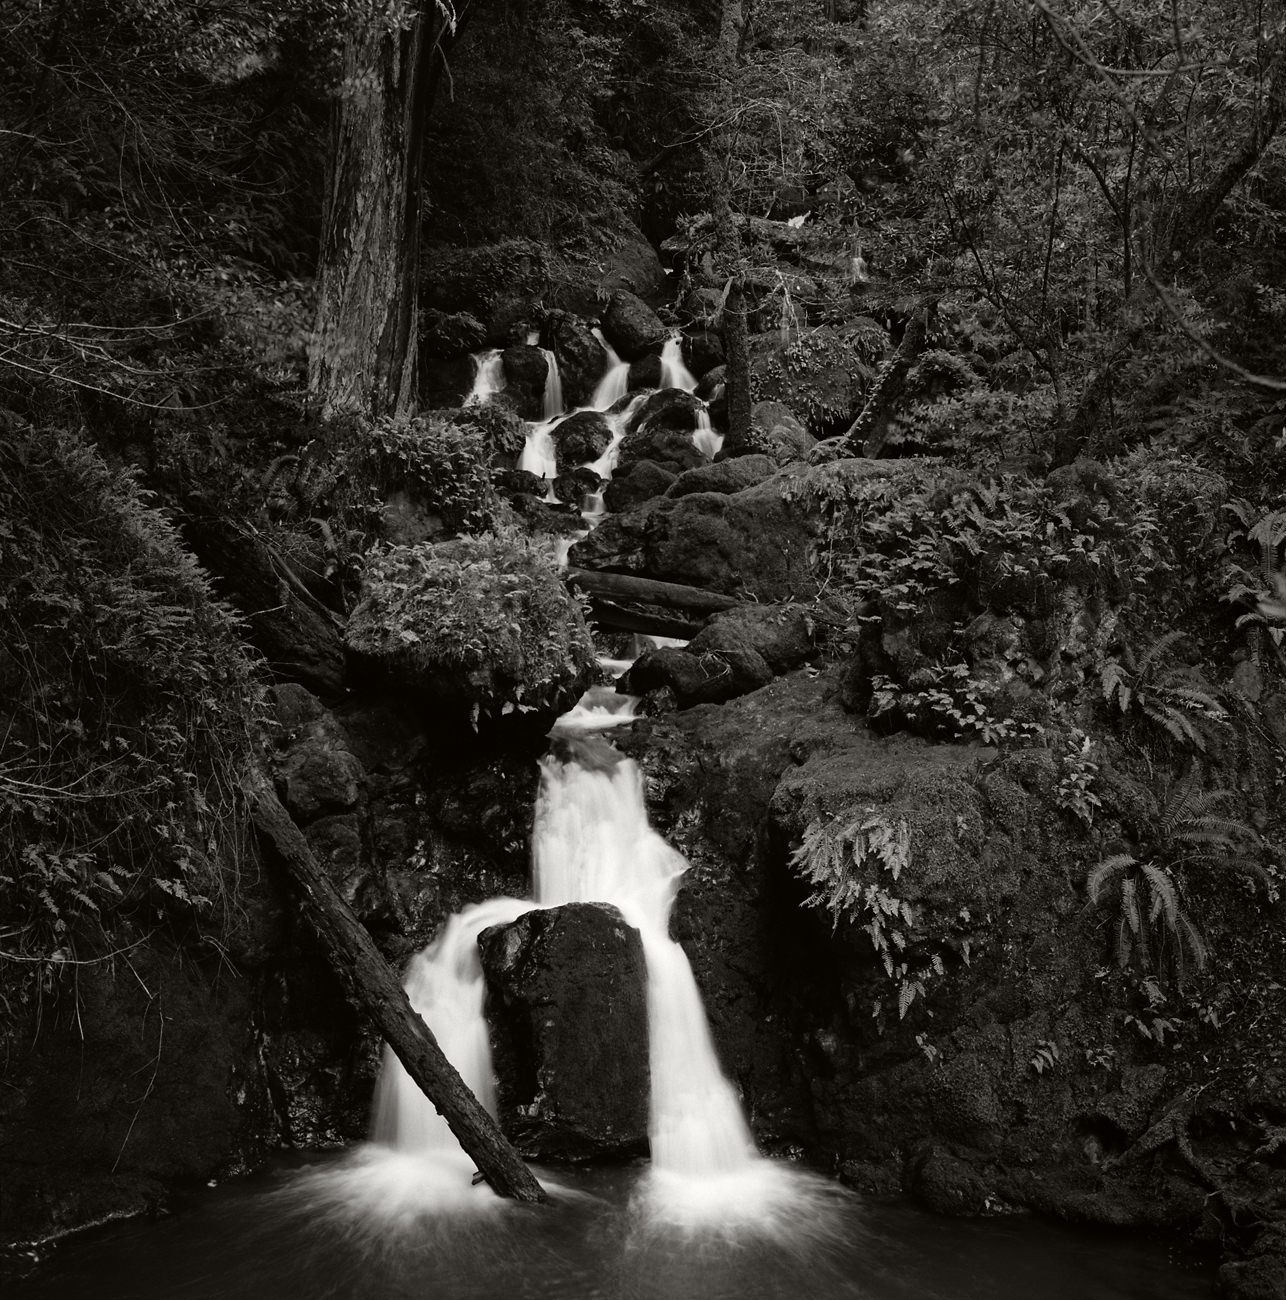 Cataract_Falls_Mt_Tam_2013-3.jpg